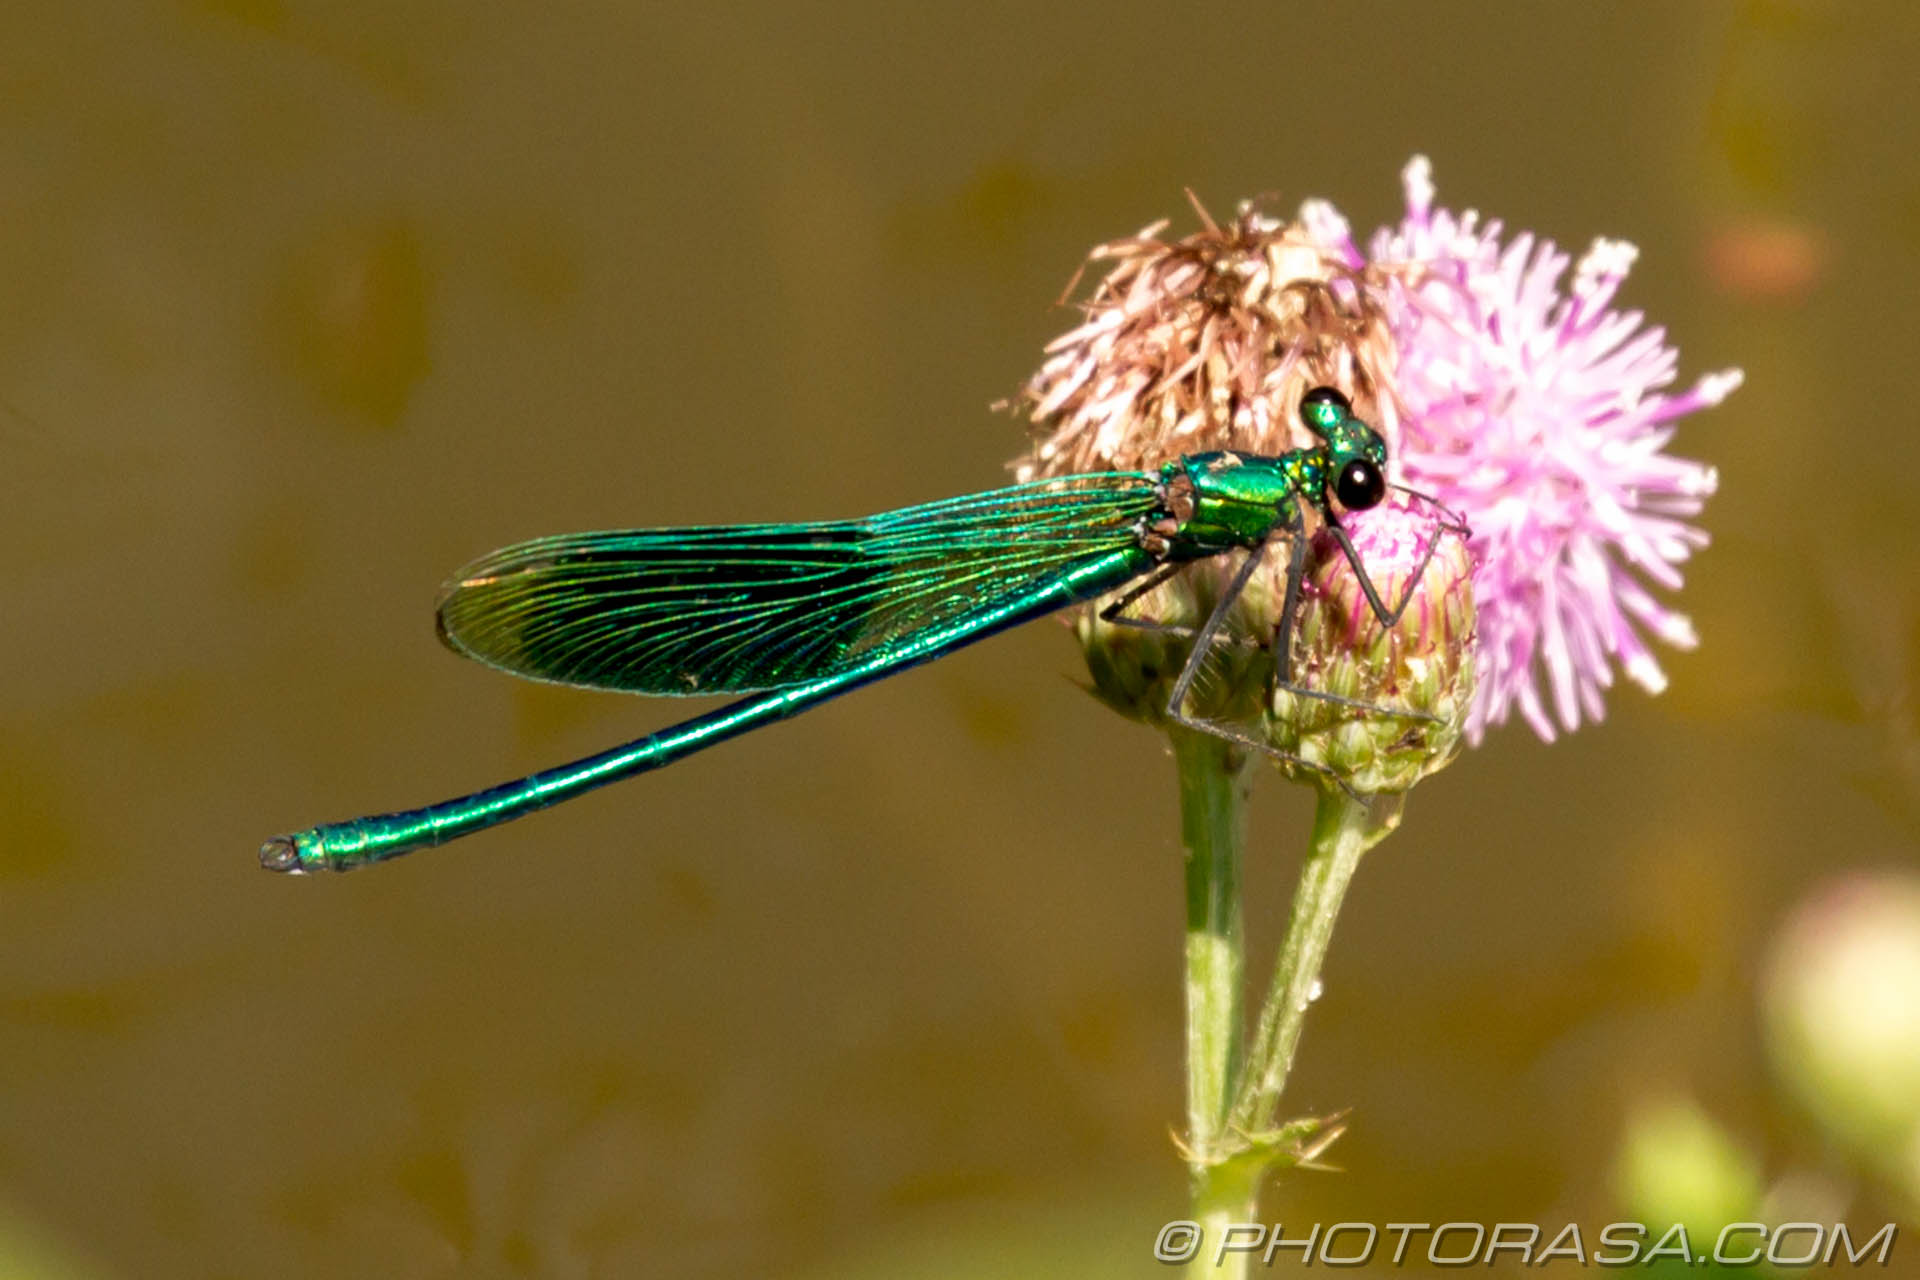 https://photorasa.com/damselflies/green-demoiselle/